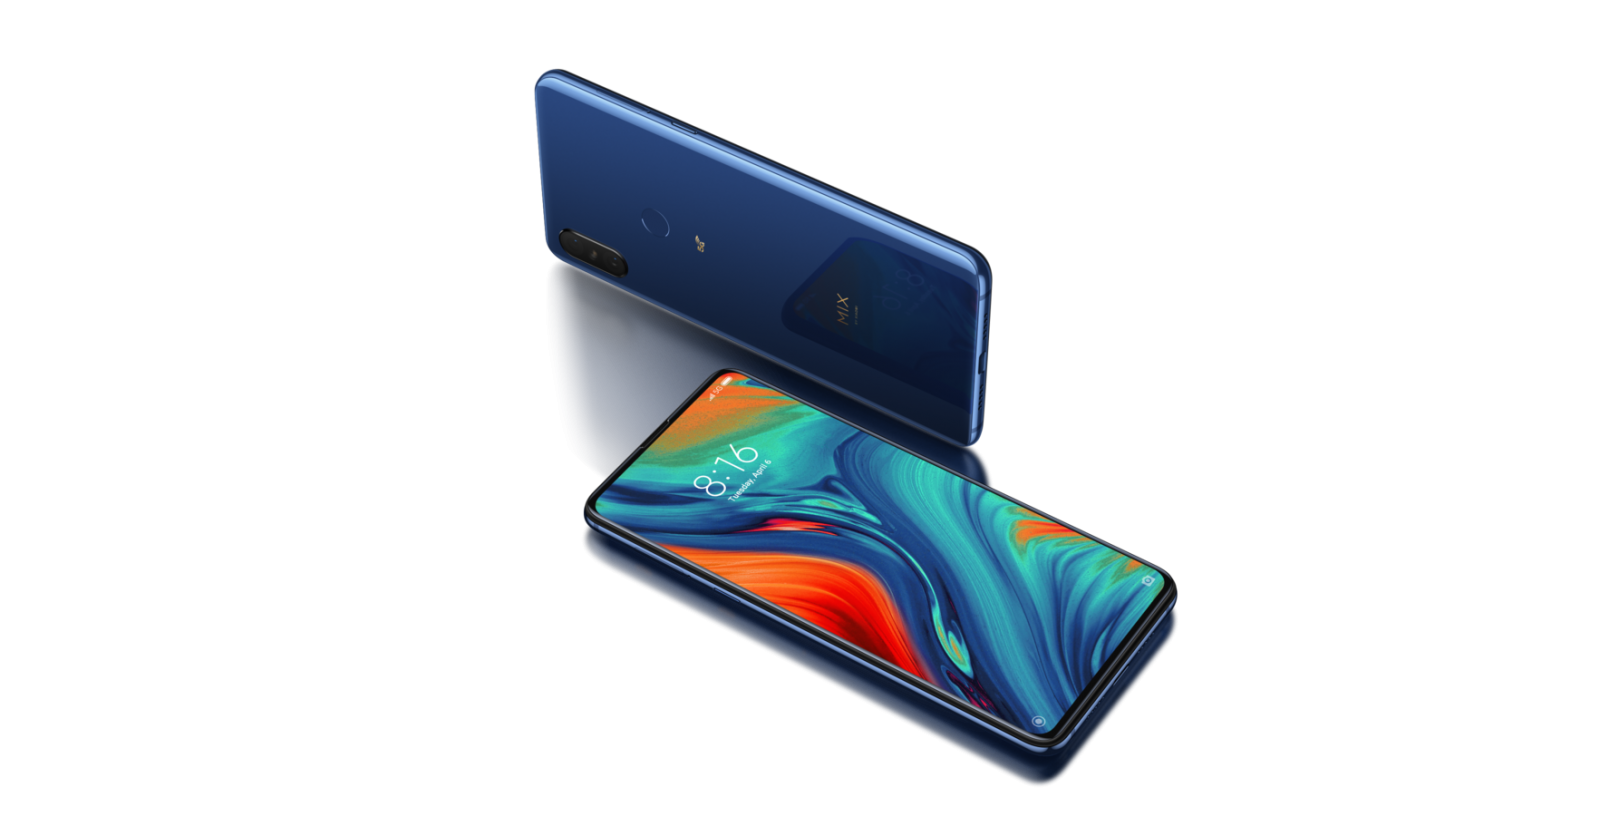 Xiaomi launches Mi MIX 3 5G and Mi 9 at MWC19